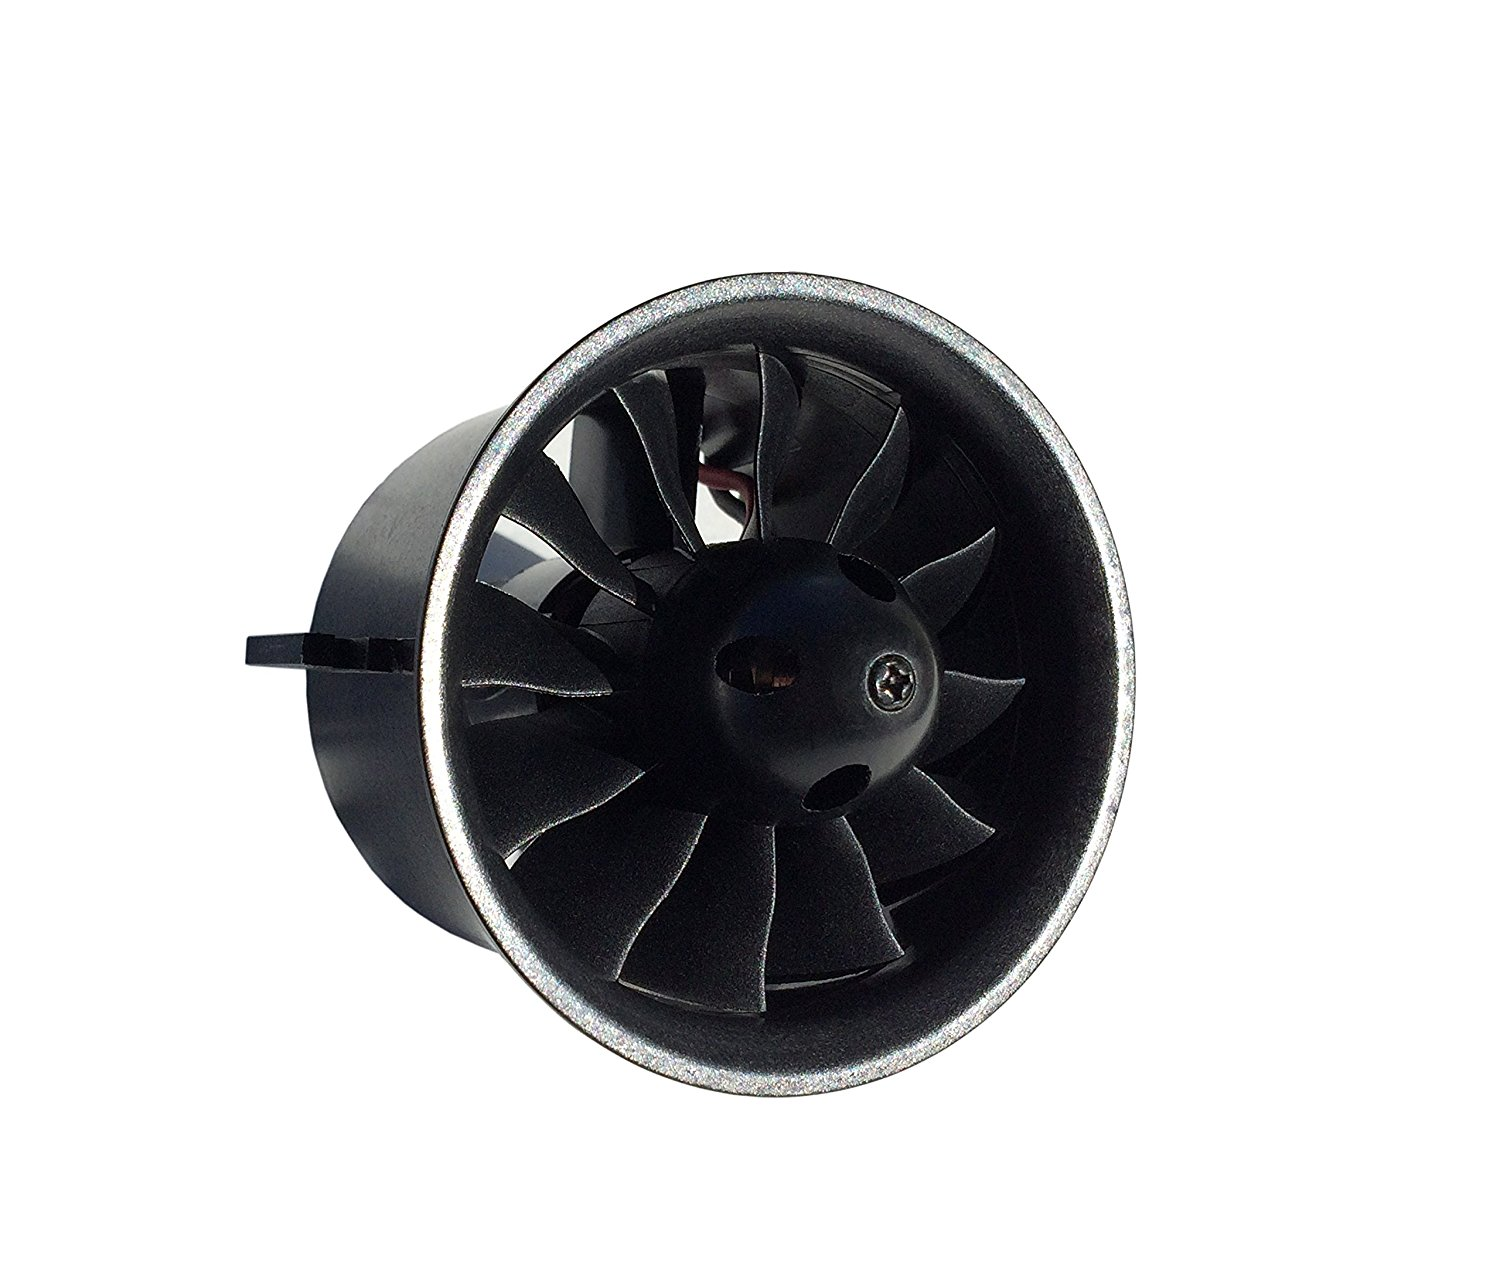 QX-Motor 70mm EDF Ducted Fan Set 12 Blades Electric EDF with 4s Motor QF2827 2600KV Brushless Outrunner Motor for Jet AirPlane qx motor qf2822d 2222 3000kv brushless motor for 70mm duct fan edf